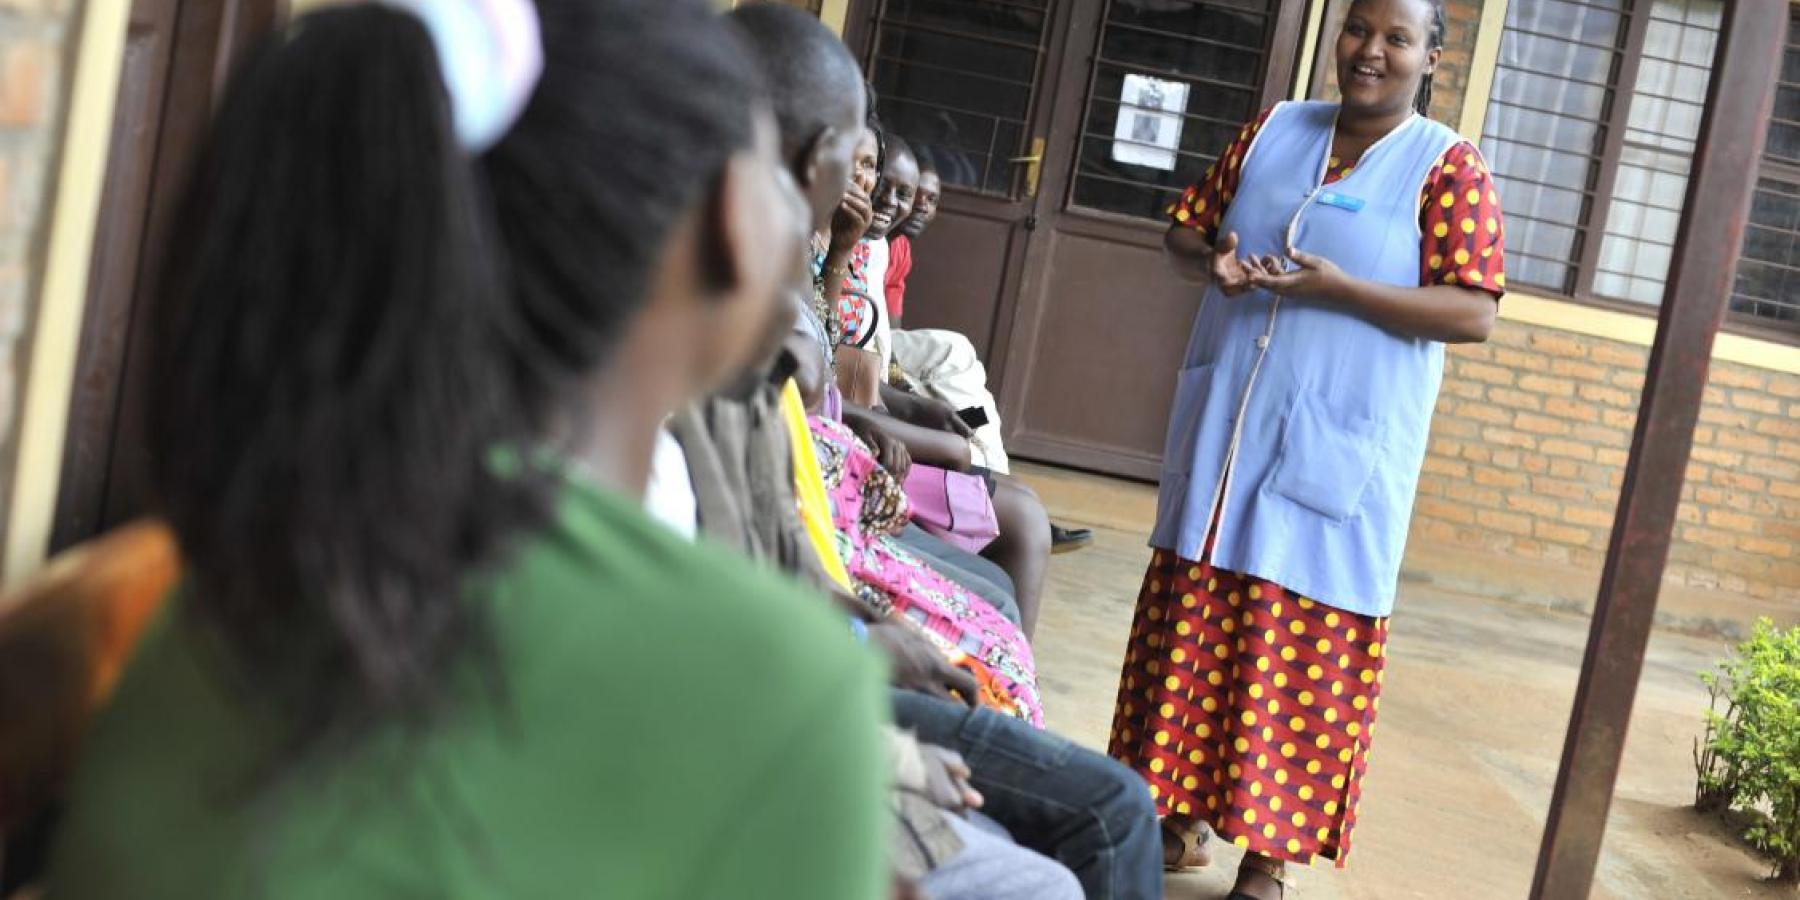 A health worker speaks to clients waiting for services at a clinic in Rwanda